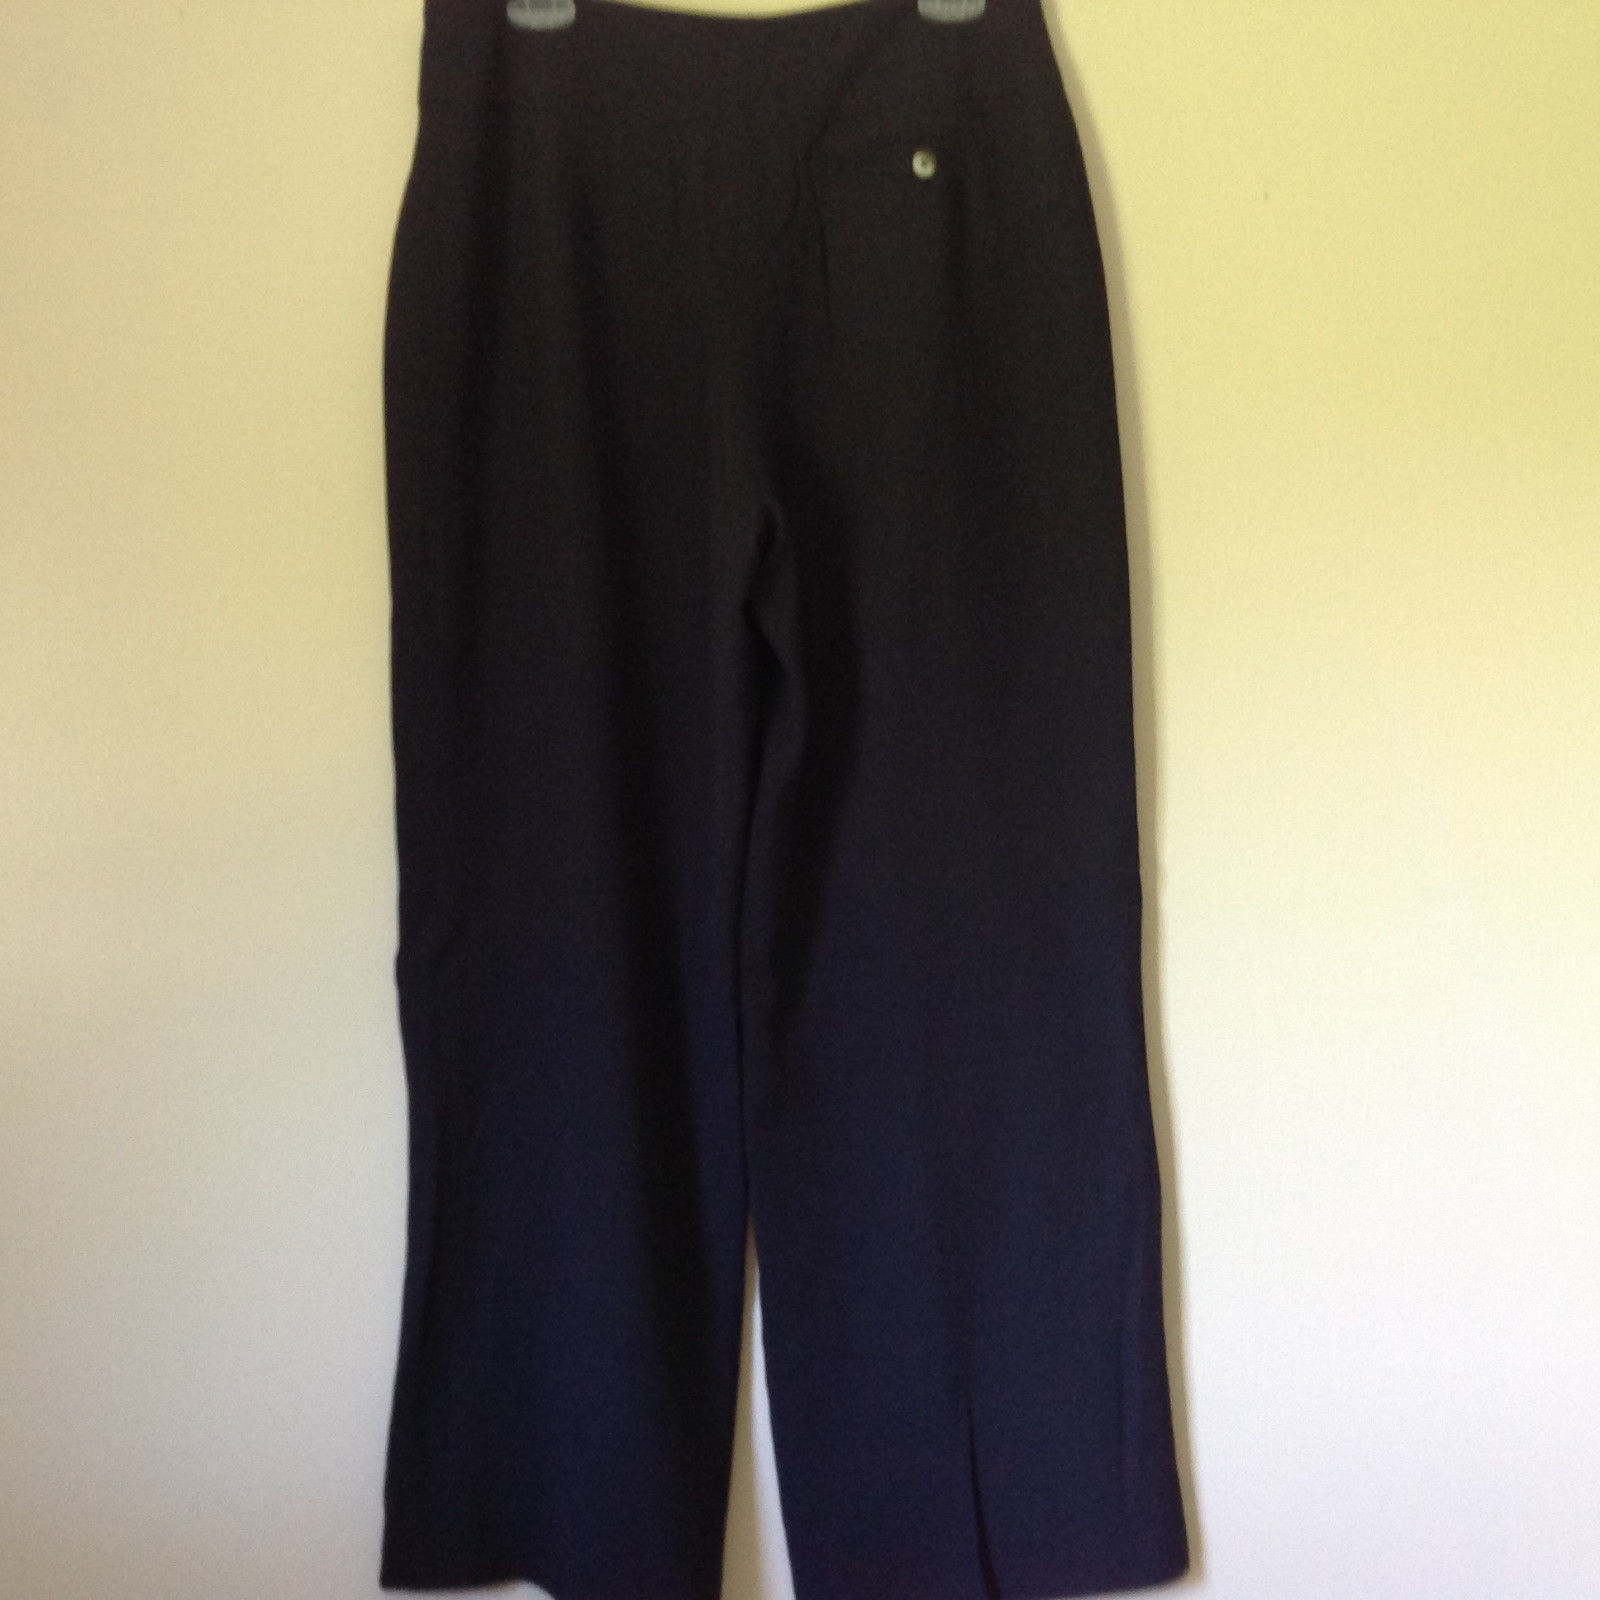 Very Nice Anne Klein New York Very Dark Blue Black Dress Pants Size 12 P